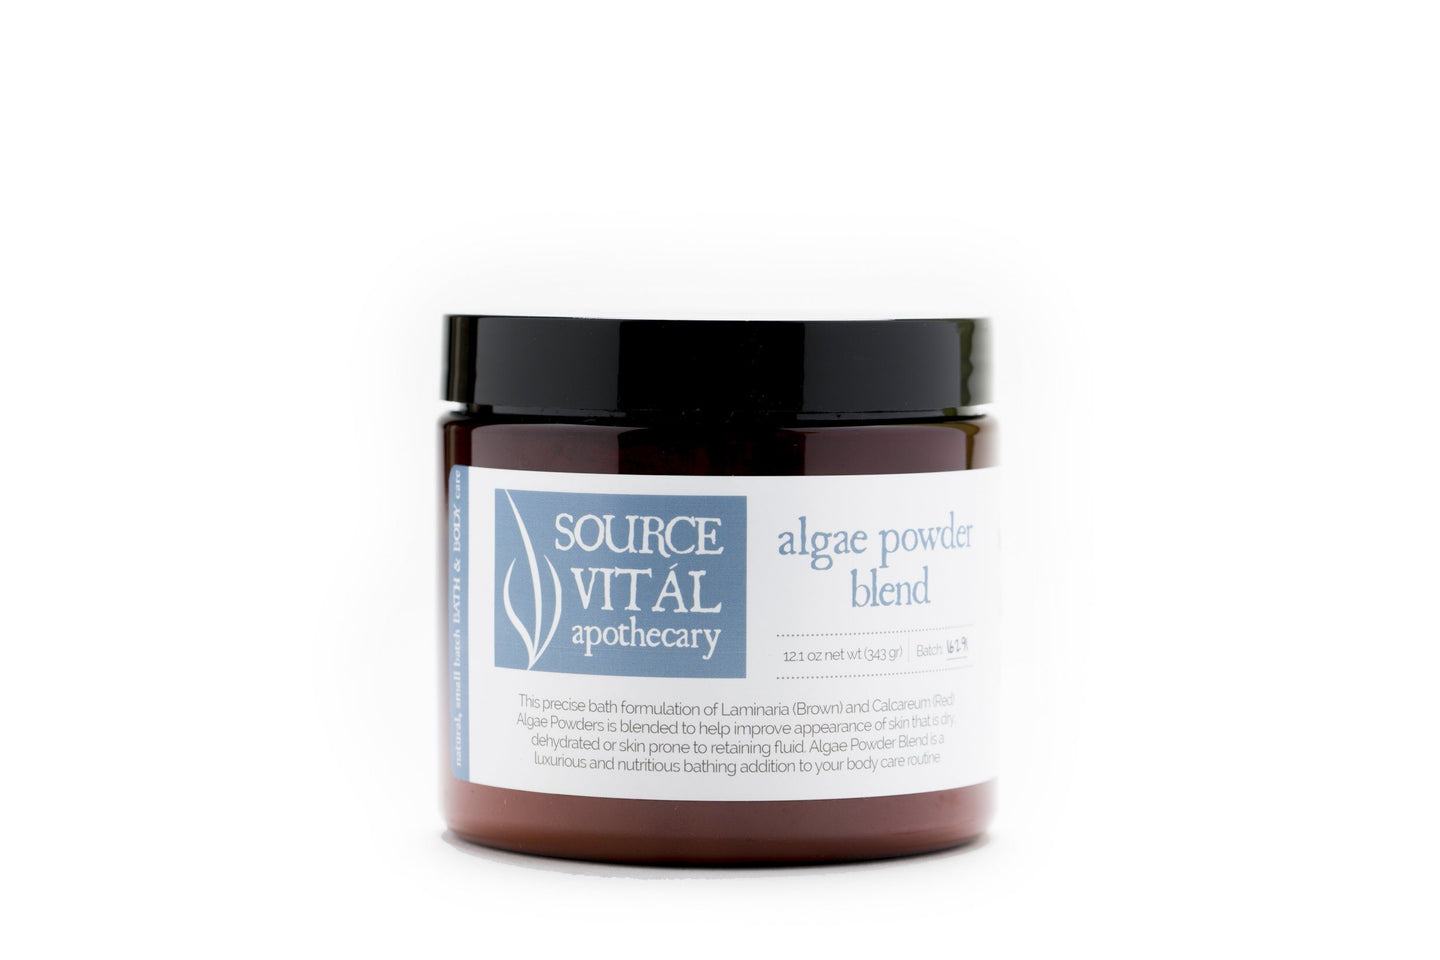 Source Vital Algae Powder Blend - Switch 2 Pure